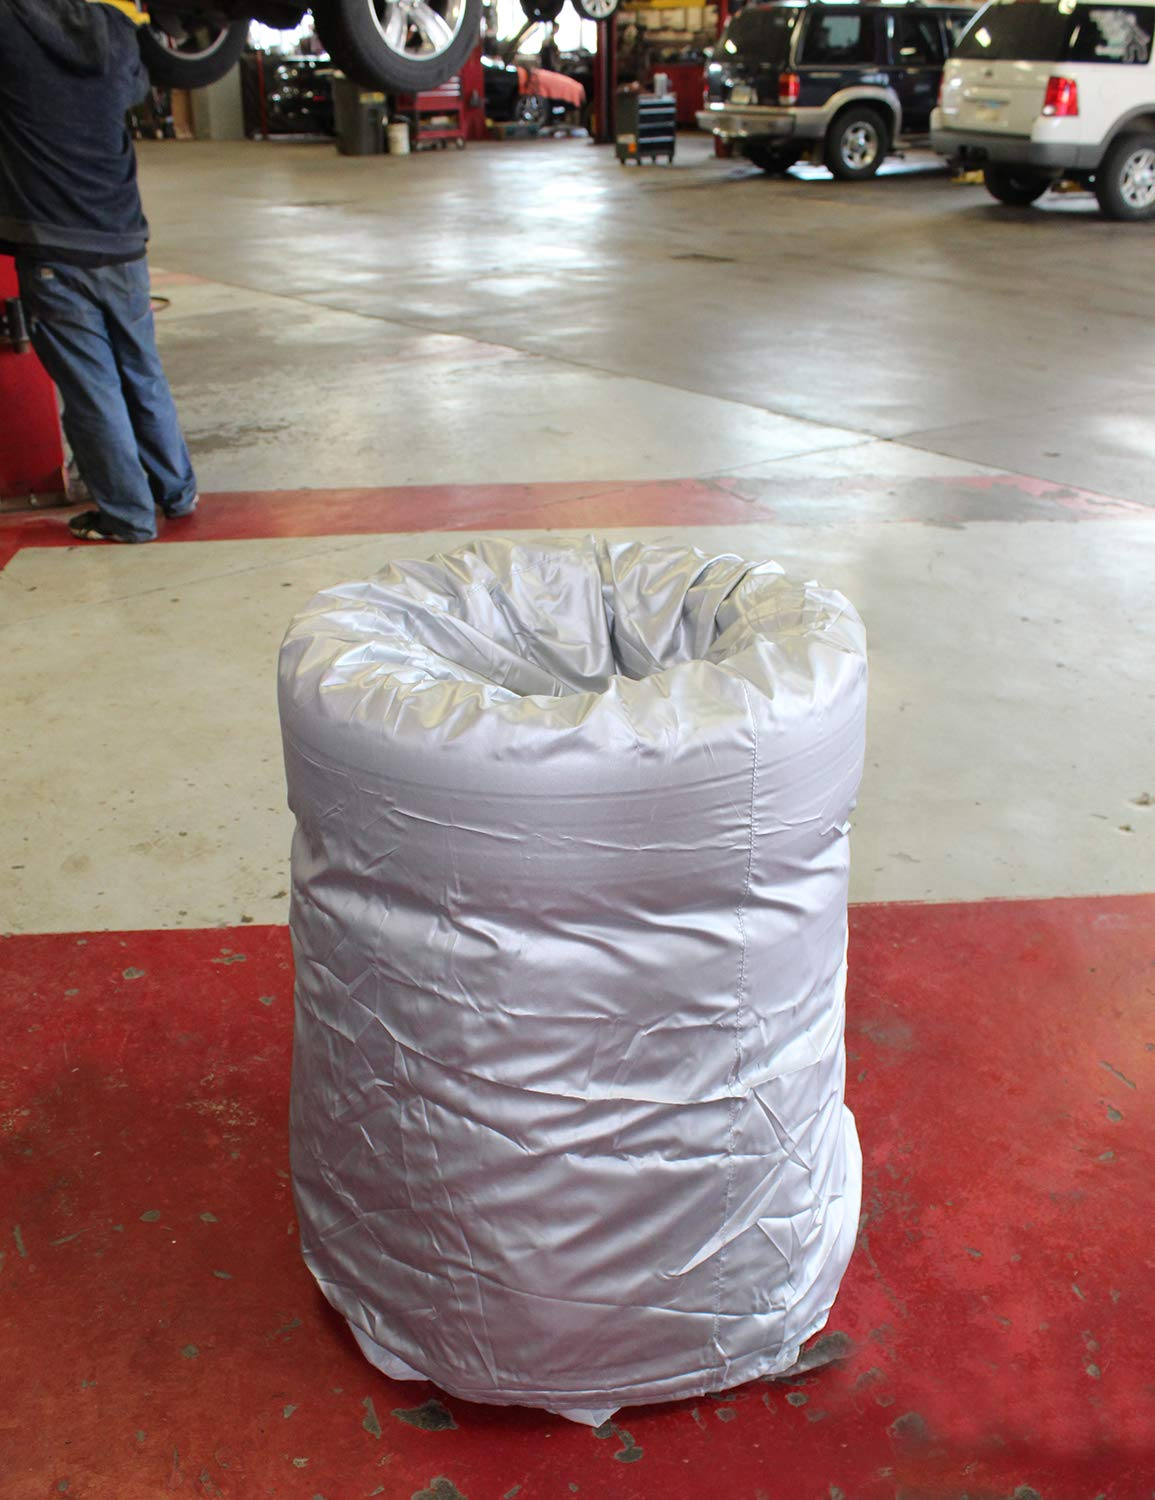 """4 Tires Up to 20/"""" Diameter Small 20/"""" x 30/"""" Inch Tire Storage Bag Seasonal Spare Snow Tire Bag ABN Car Tire Cover"""